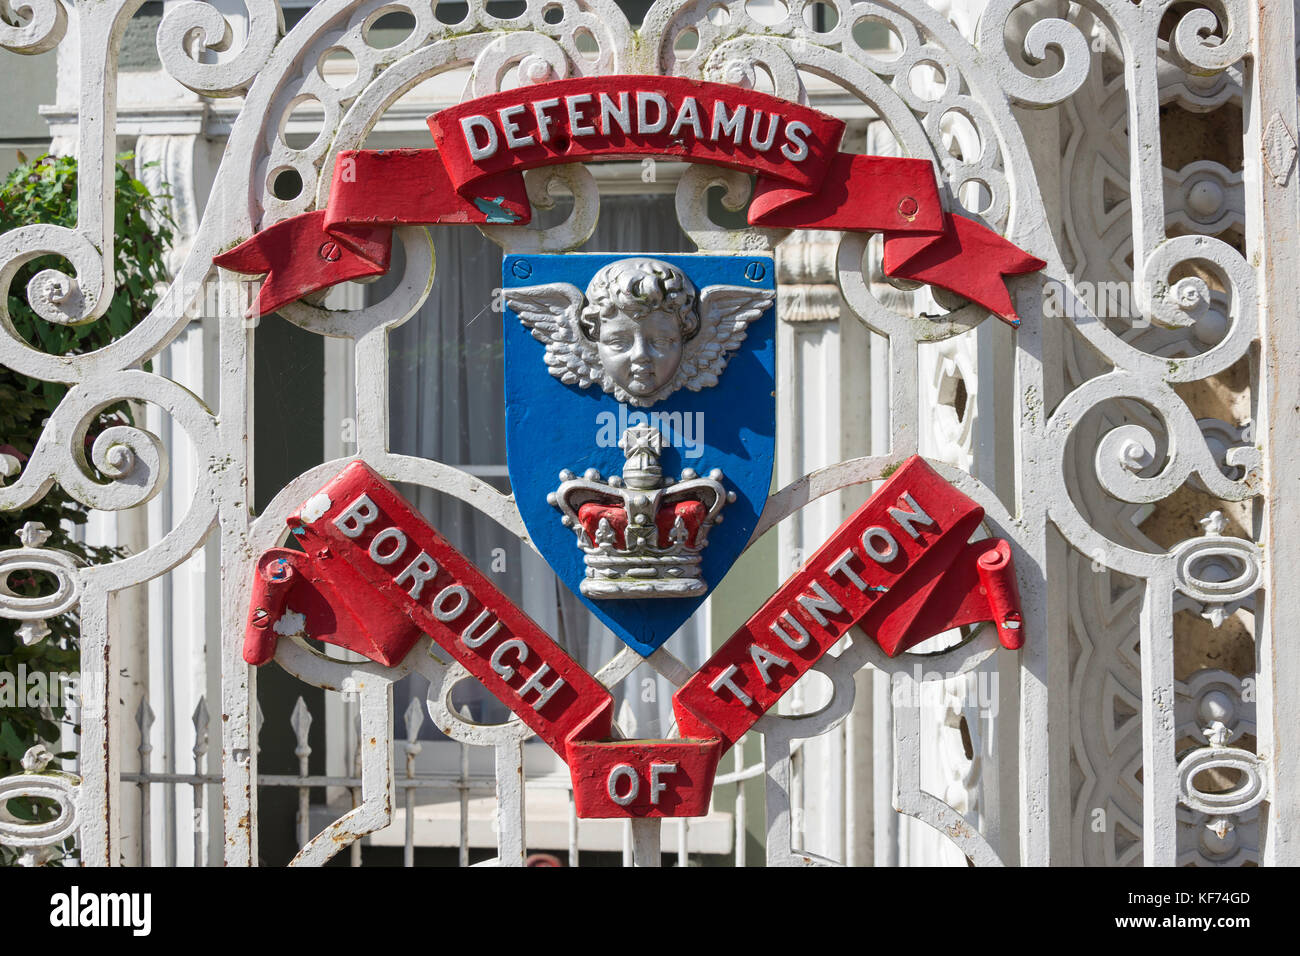 Town crest on entrance gate to Vivary Park, Taunton, Somerset, England, United Kingdom - Stock Image